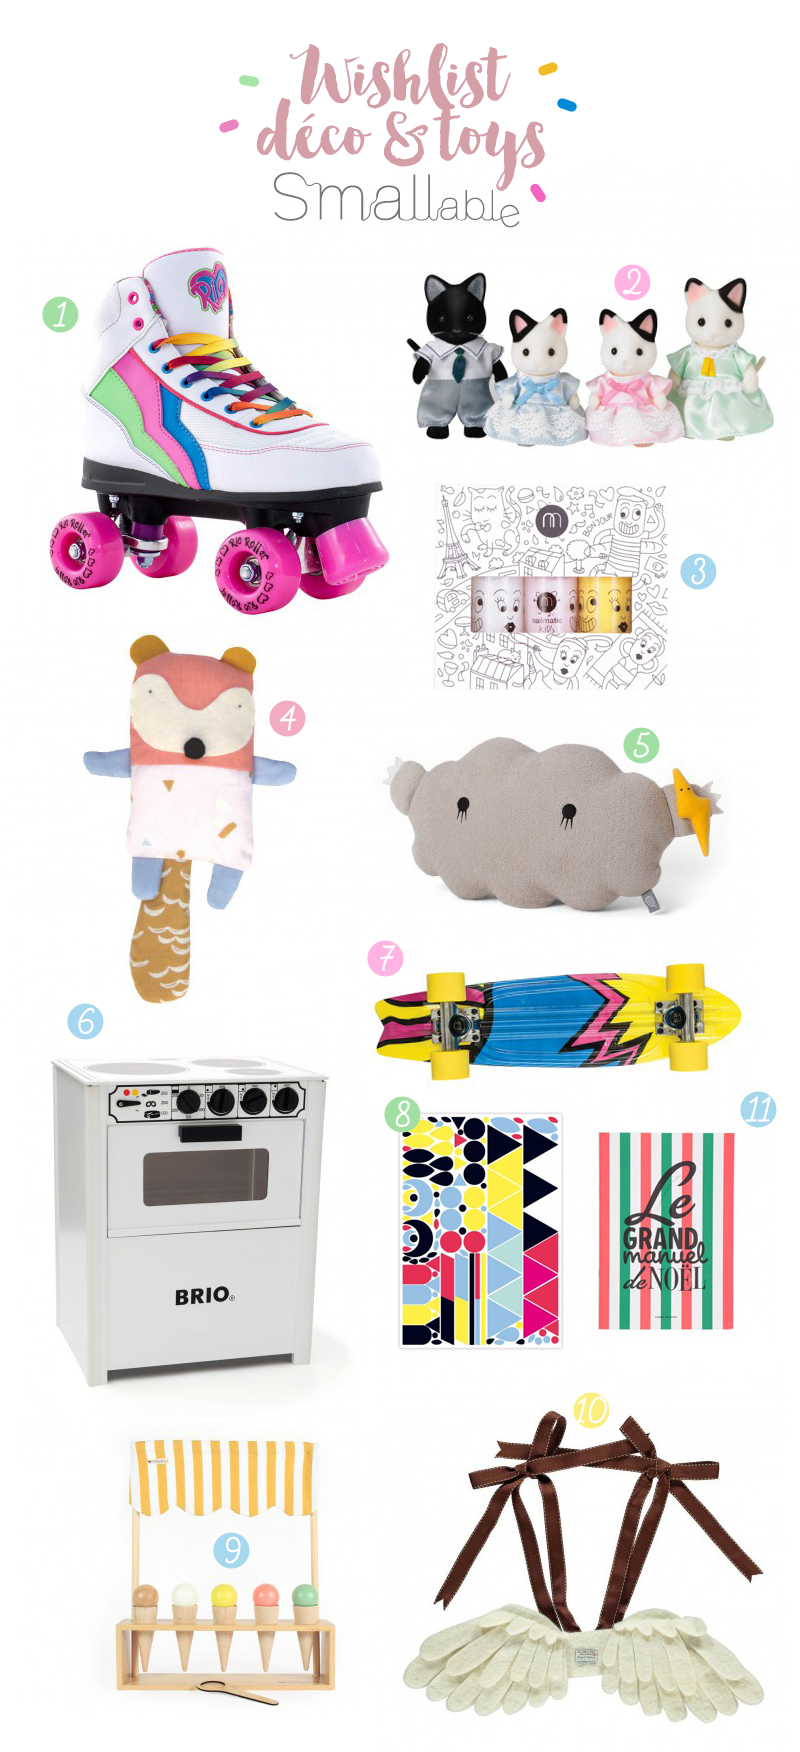 wishlist-deco et toys noel chez smallable